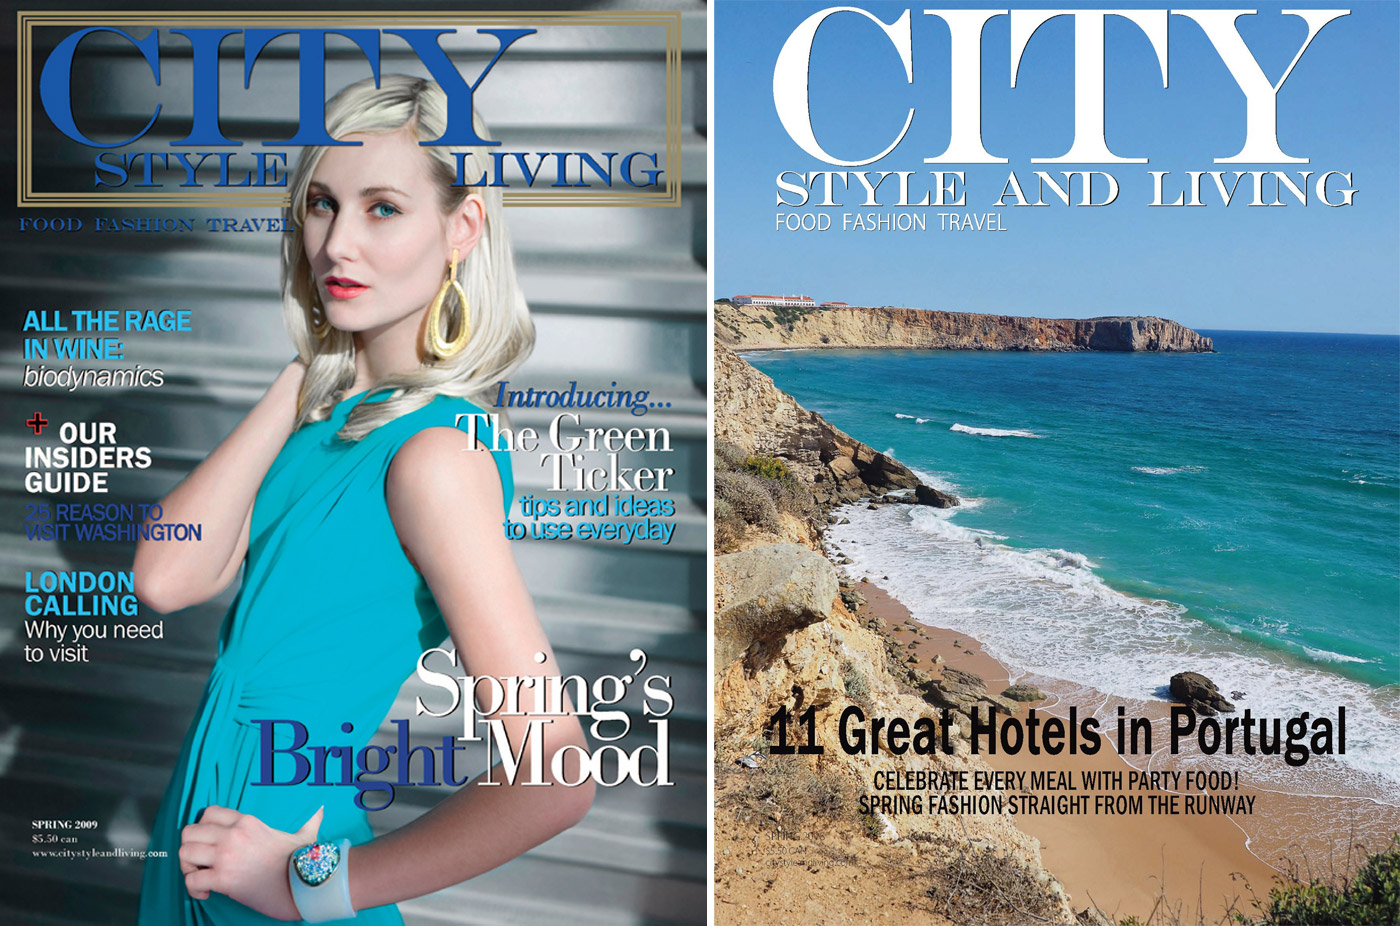 City Style and Living Magazine spring 2019 Editors Letter